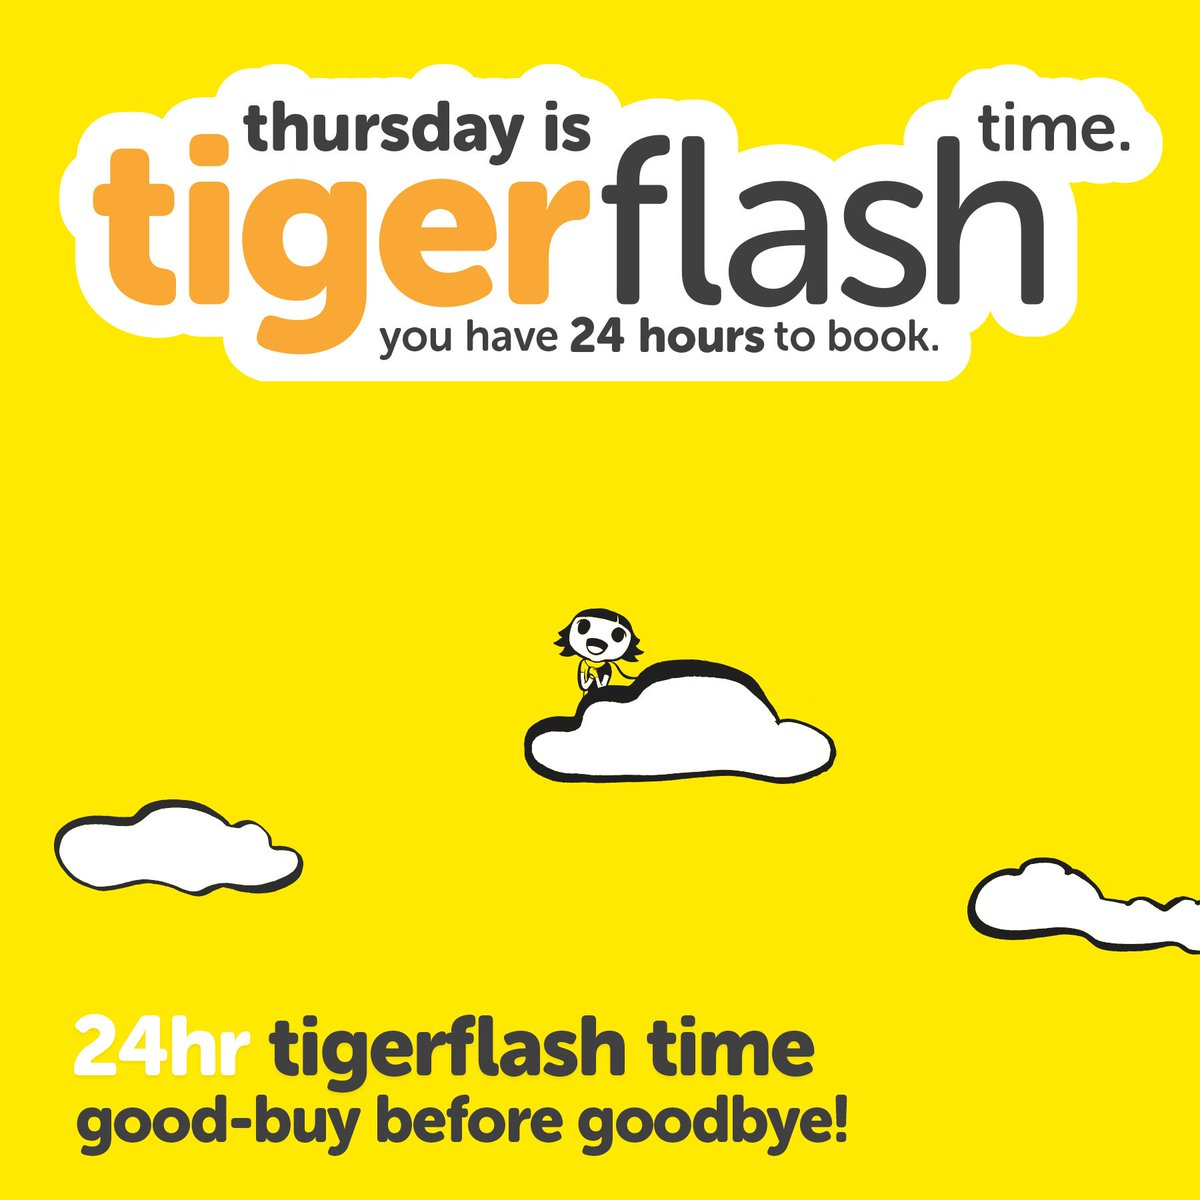 Grab these good-buys to Perth and other places from only $109* now: https://t.co/FIX0KysTos #Tigerflash Look out for more at @flyscoot! https://t.co/8rciZl0QhF